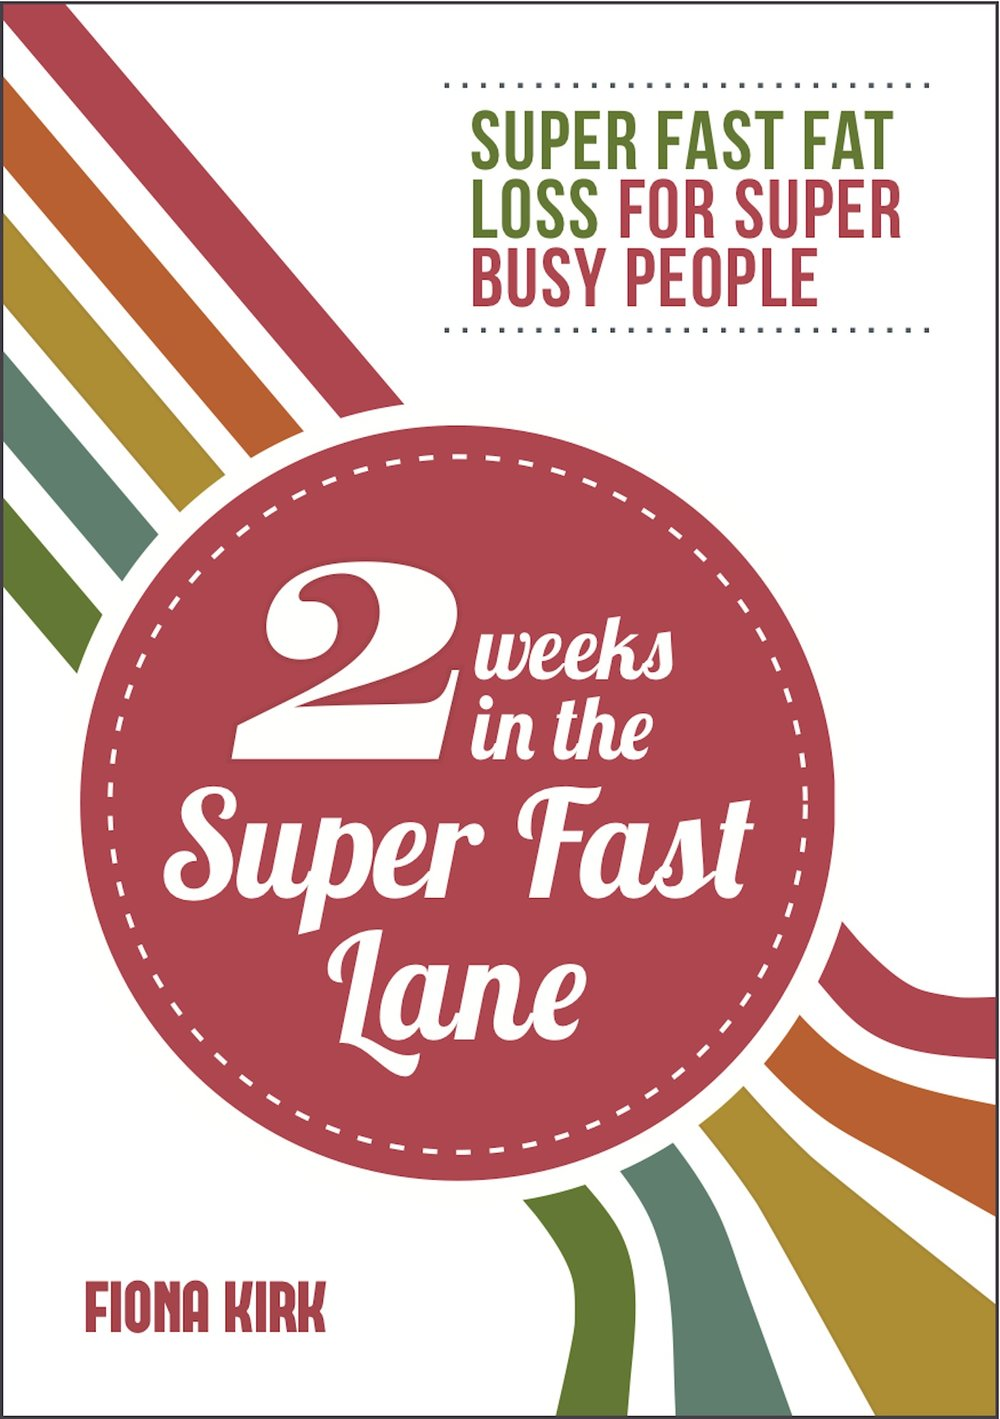 2 weeks in the super fast lane